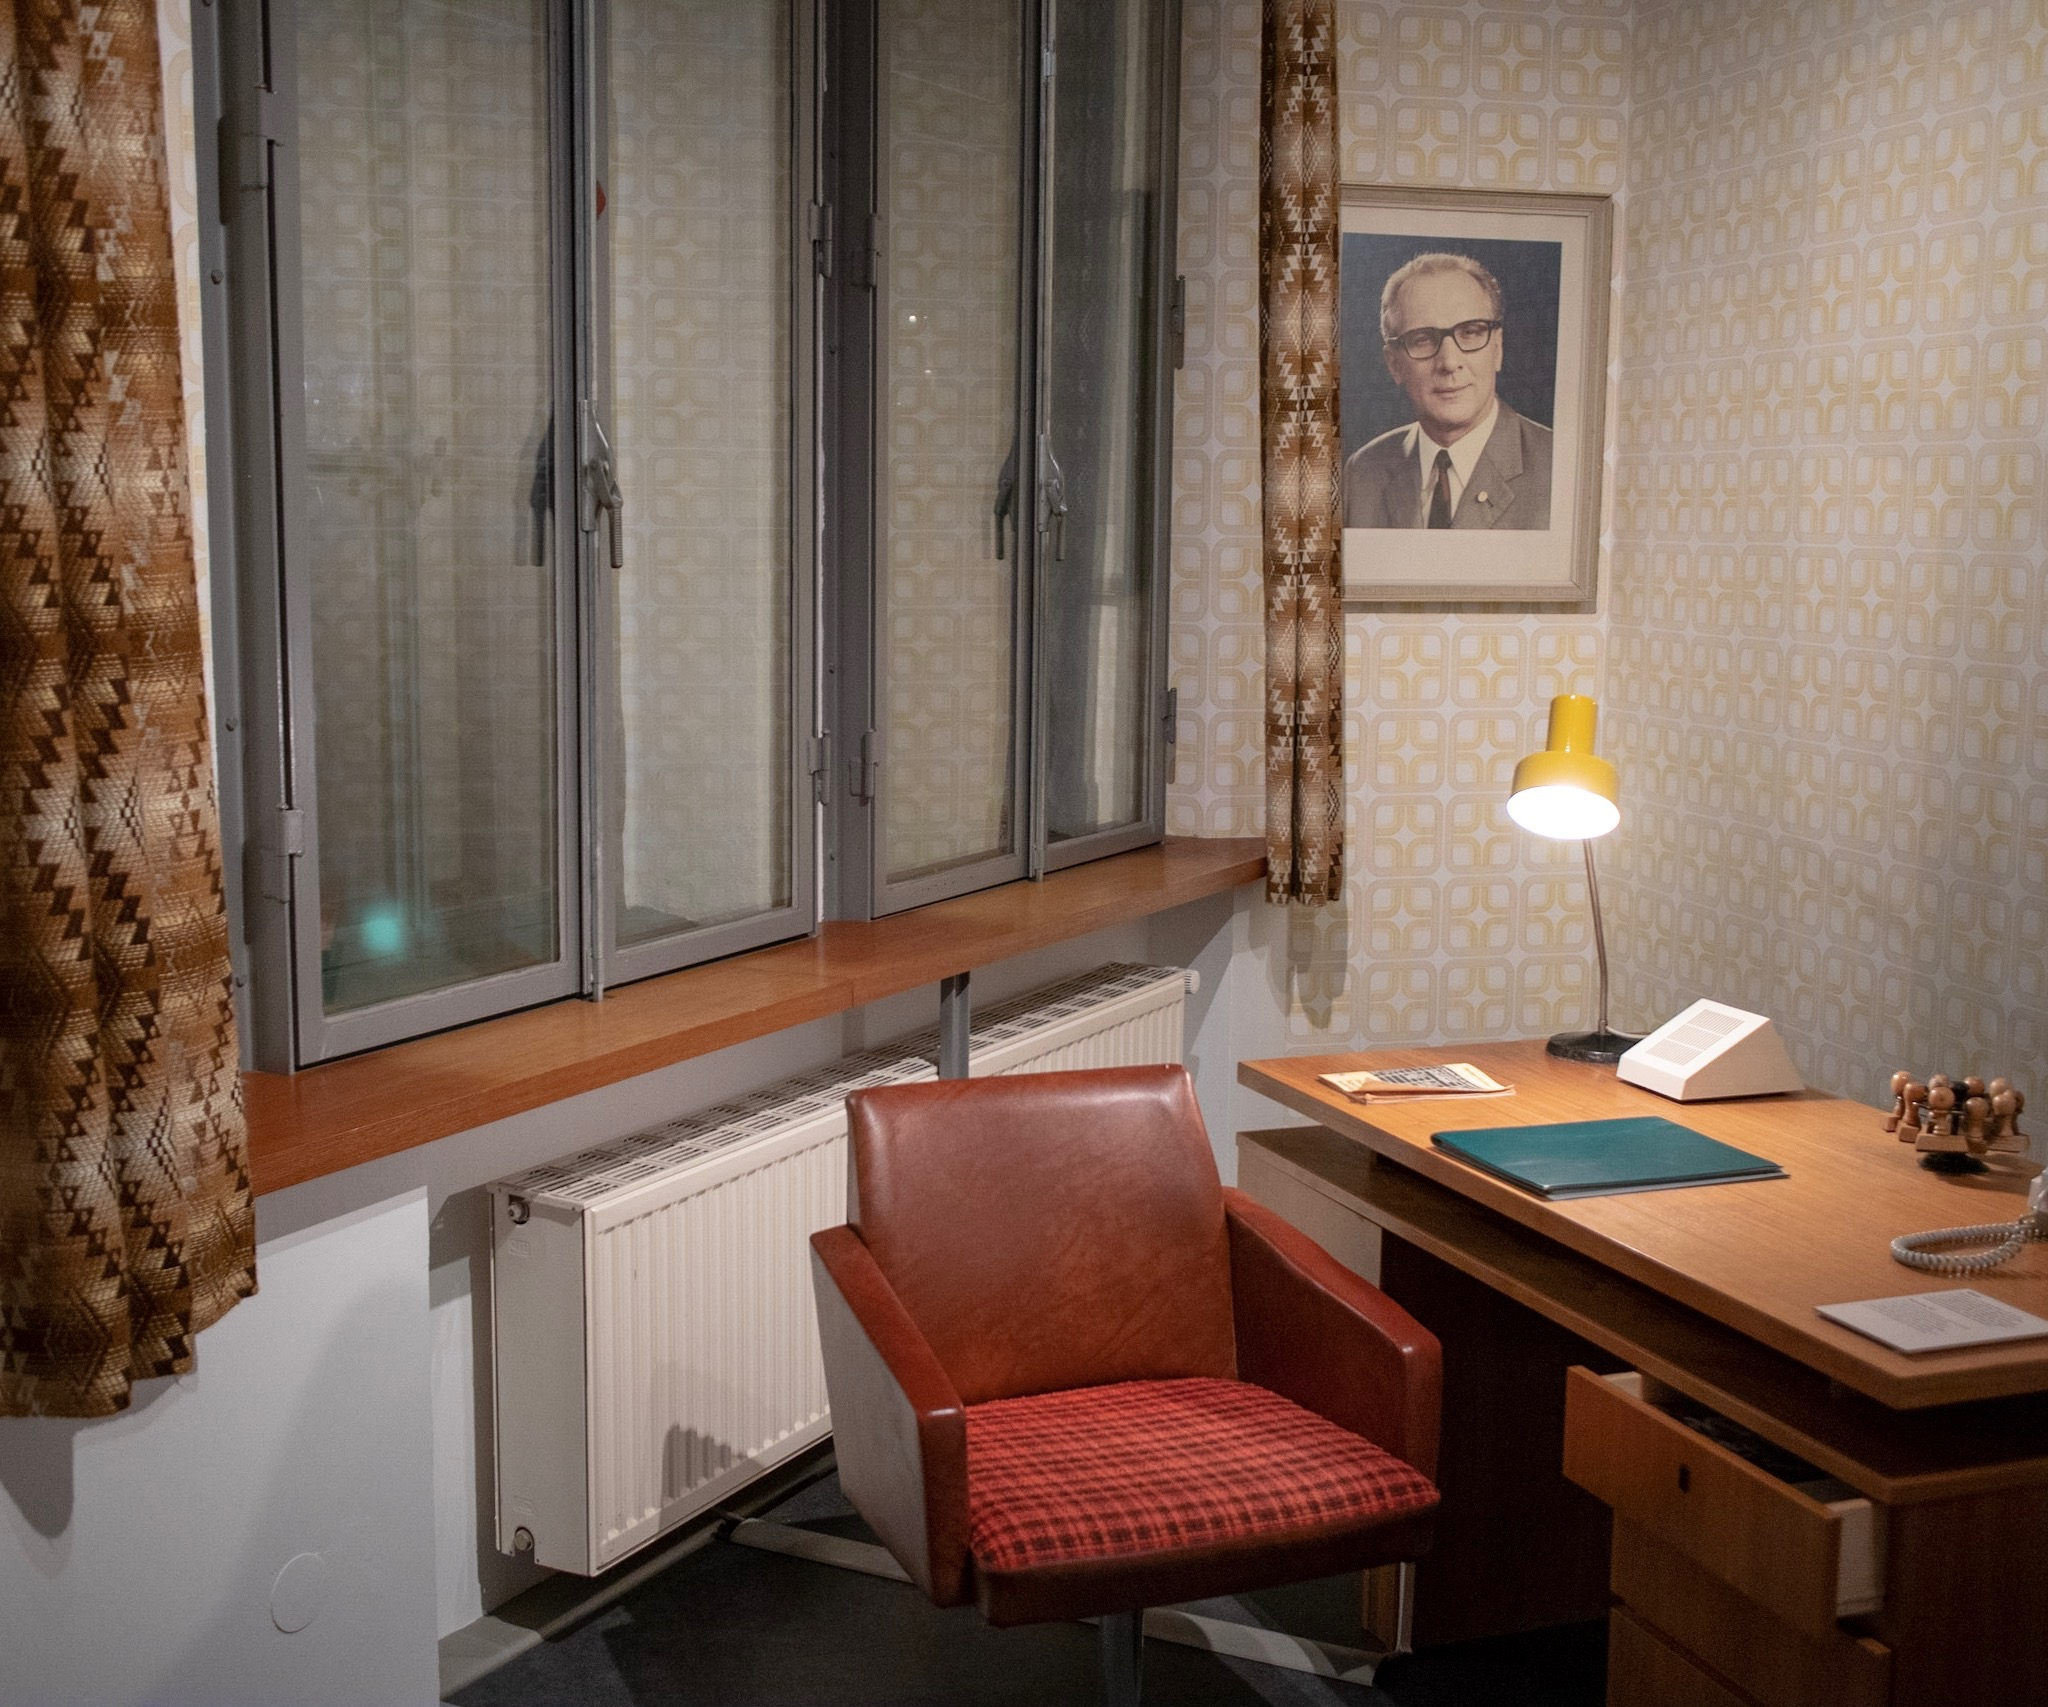 A typical room in the GDR.